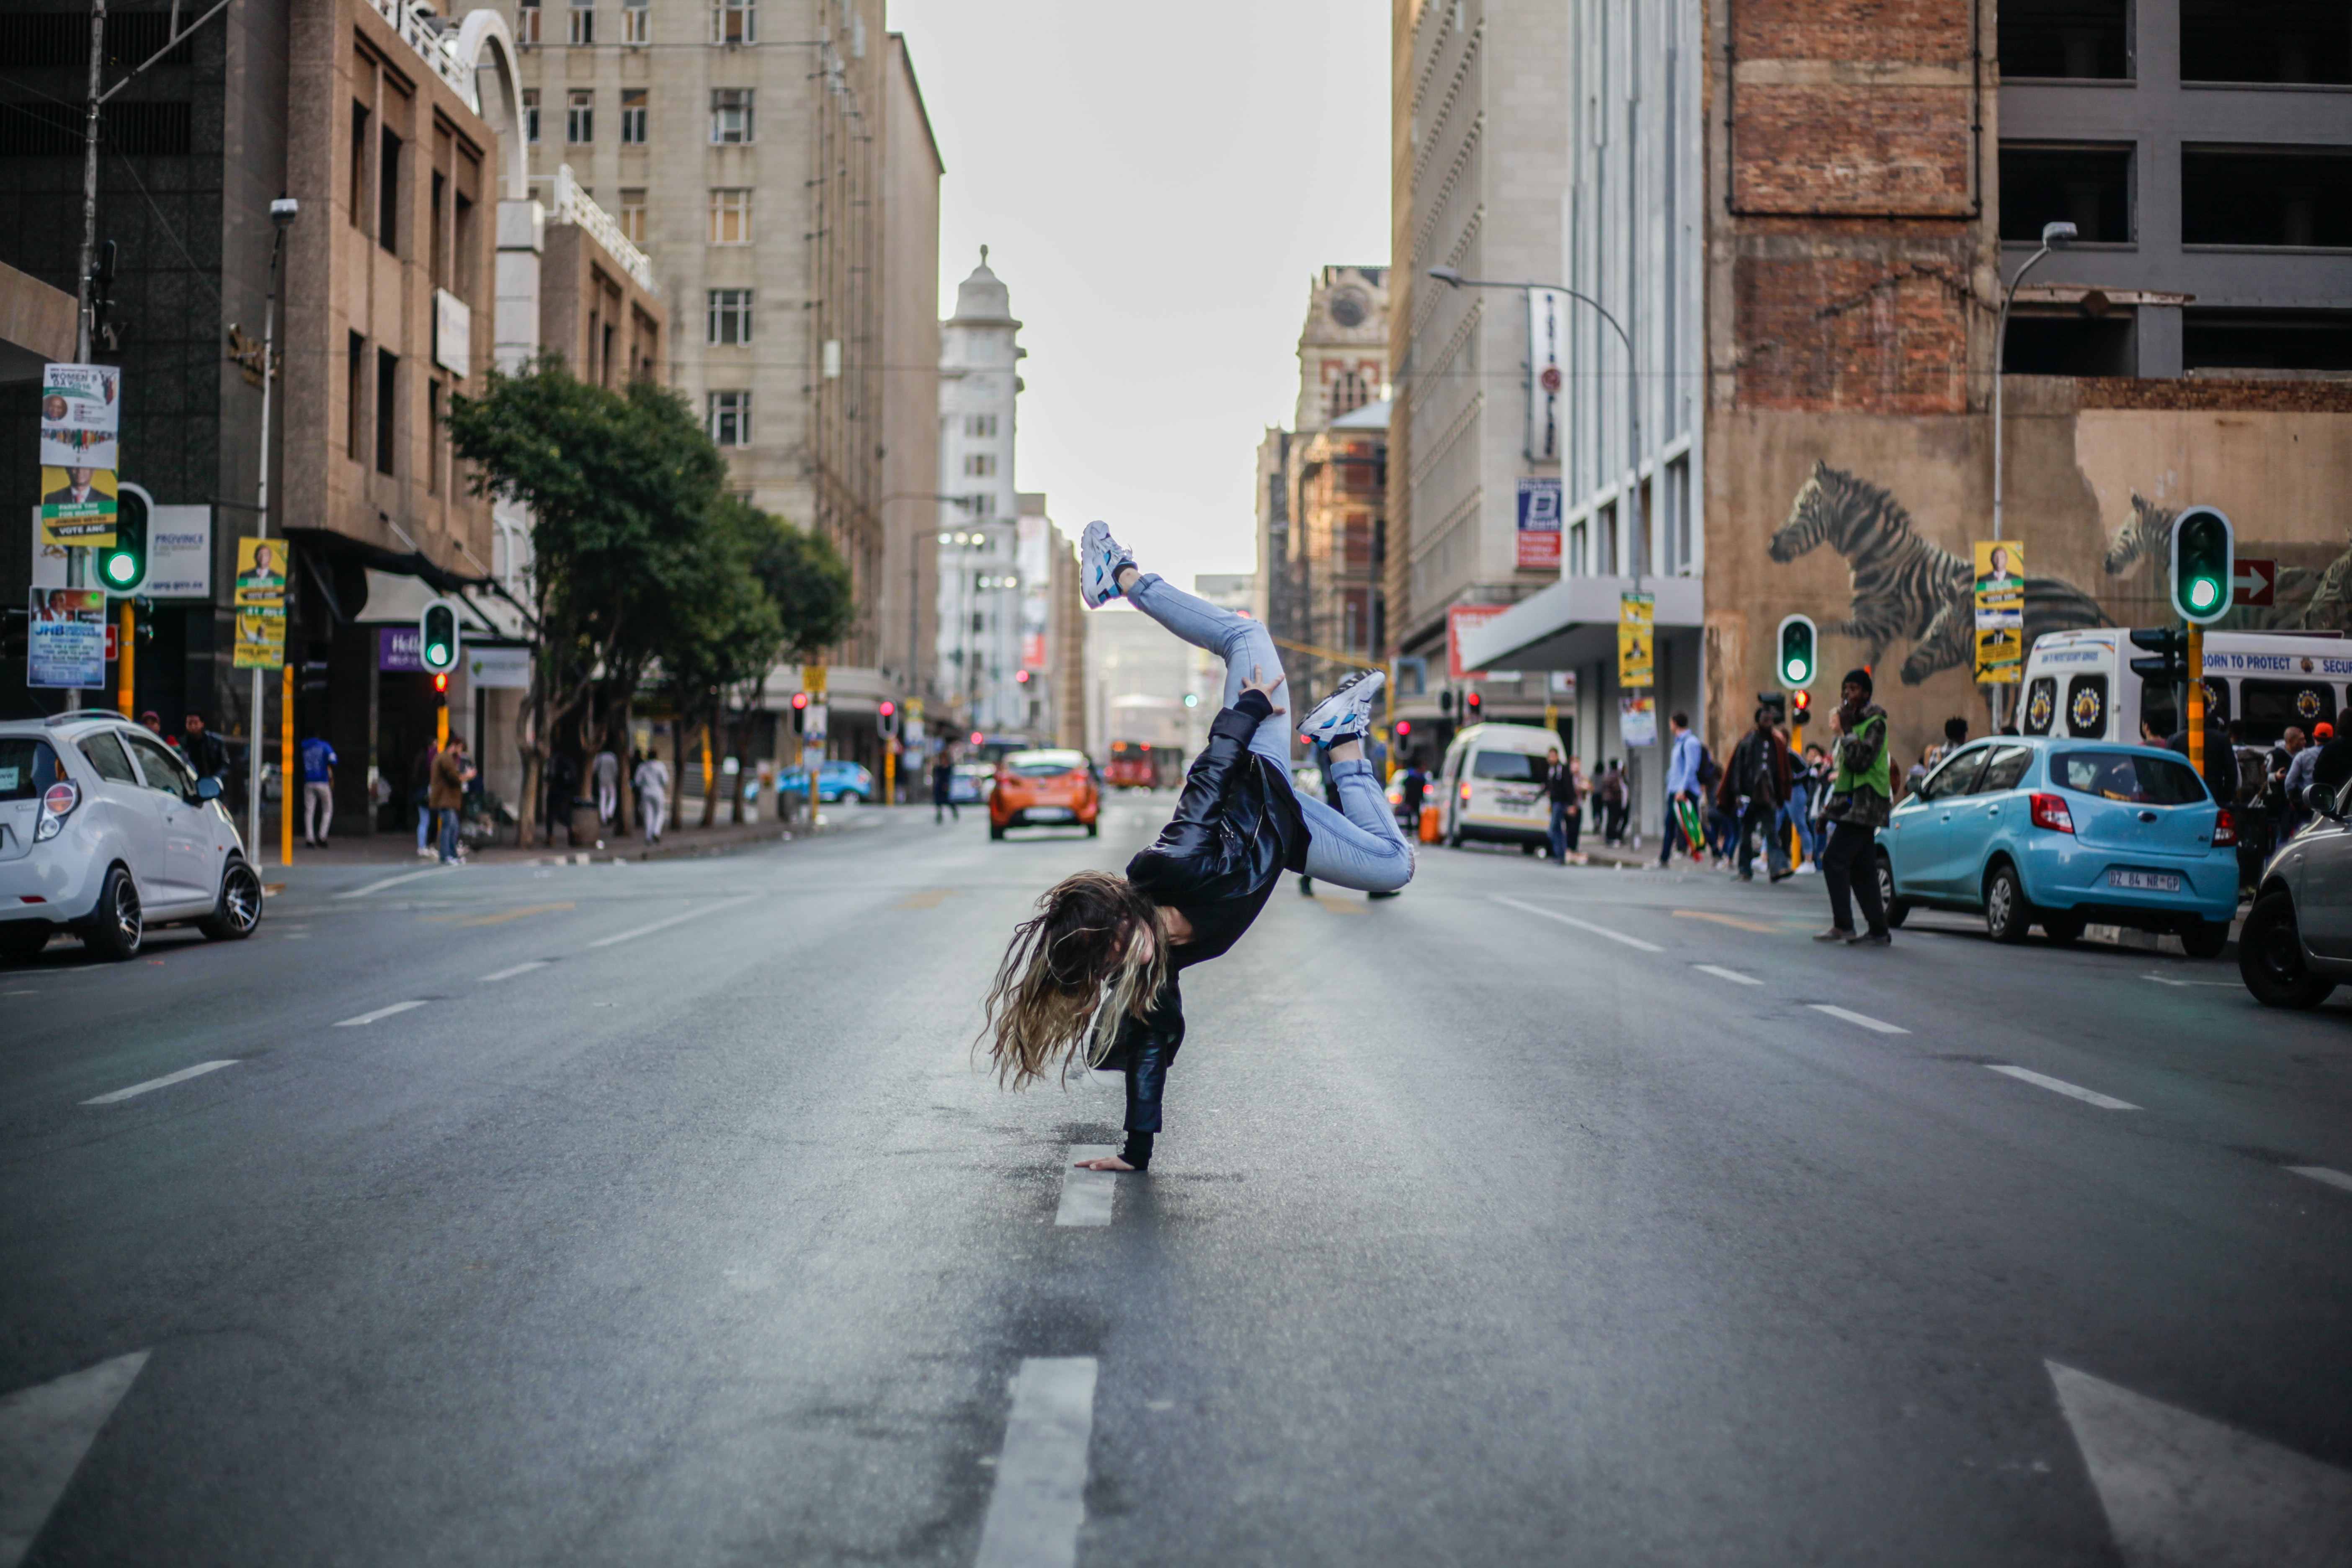 A woman doing a single handed handstand in the middle of the street.